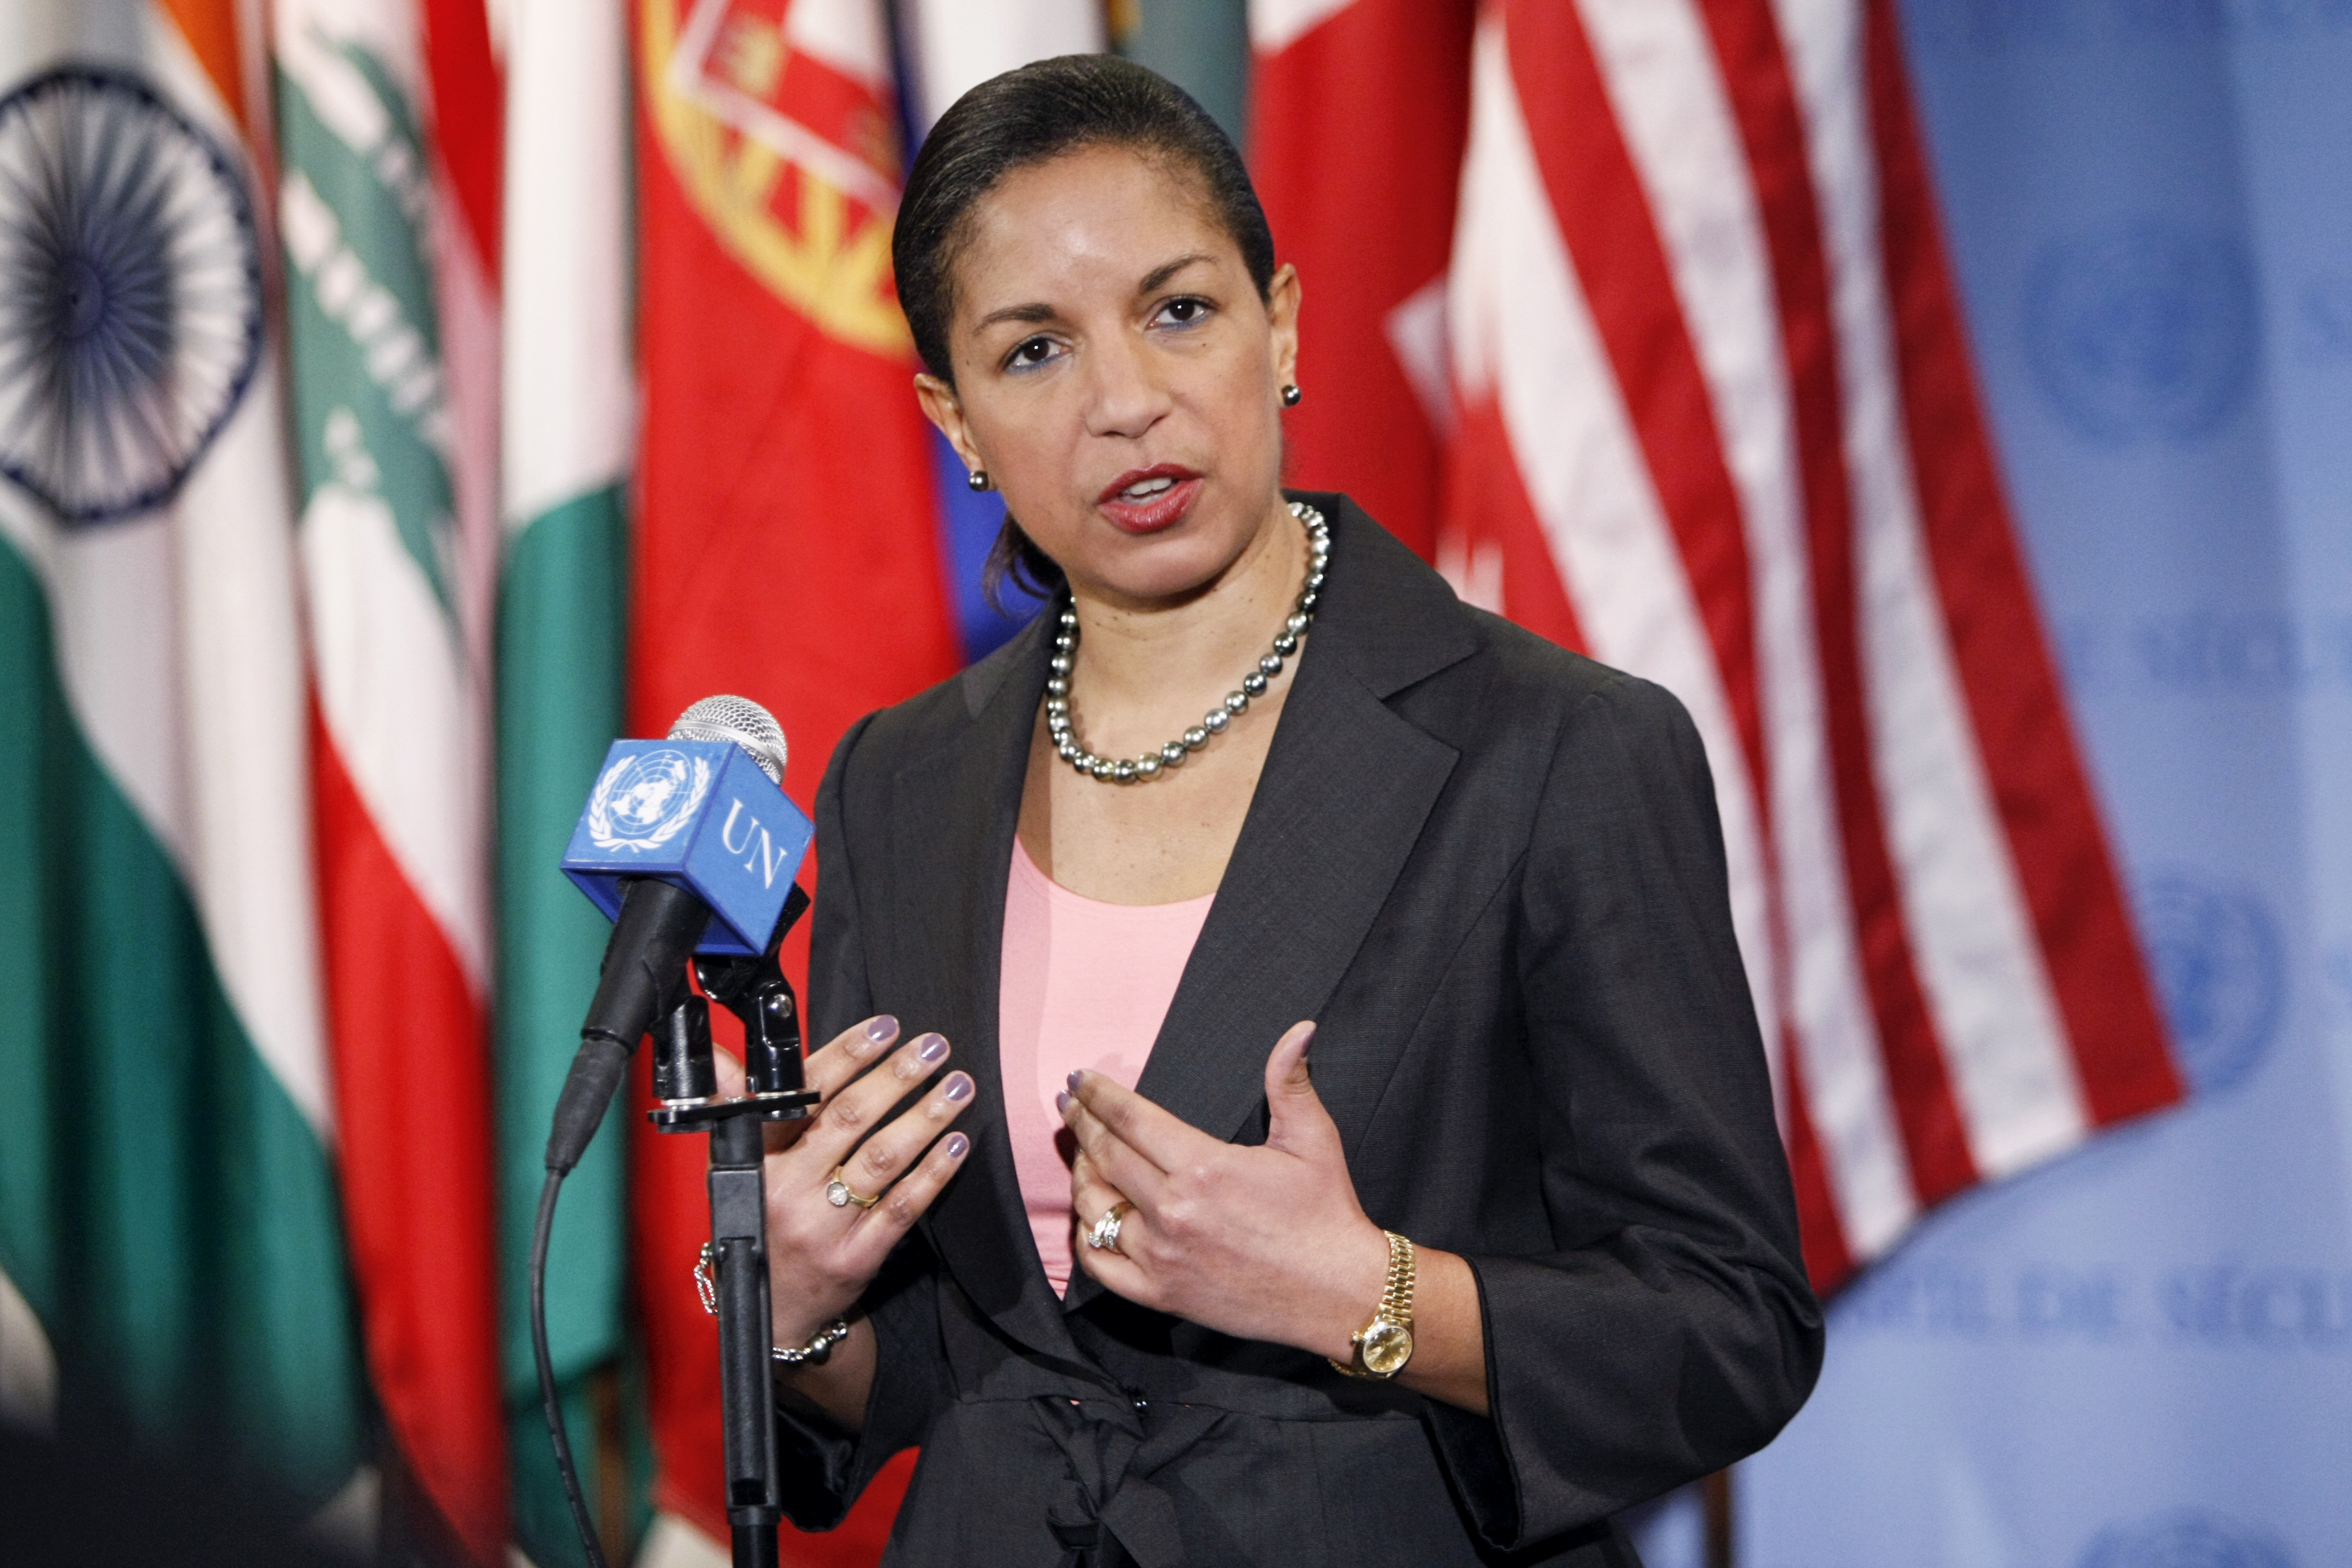 Susan Rice: U.S. Permanent Representative to the United Nations